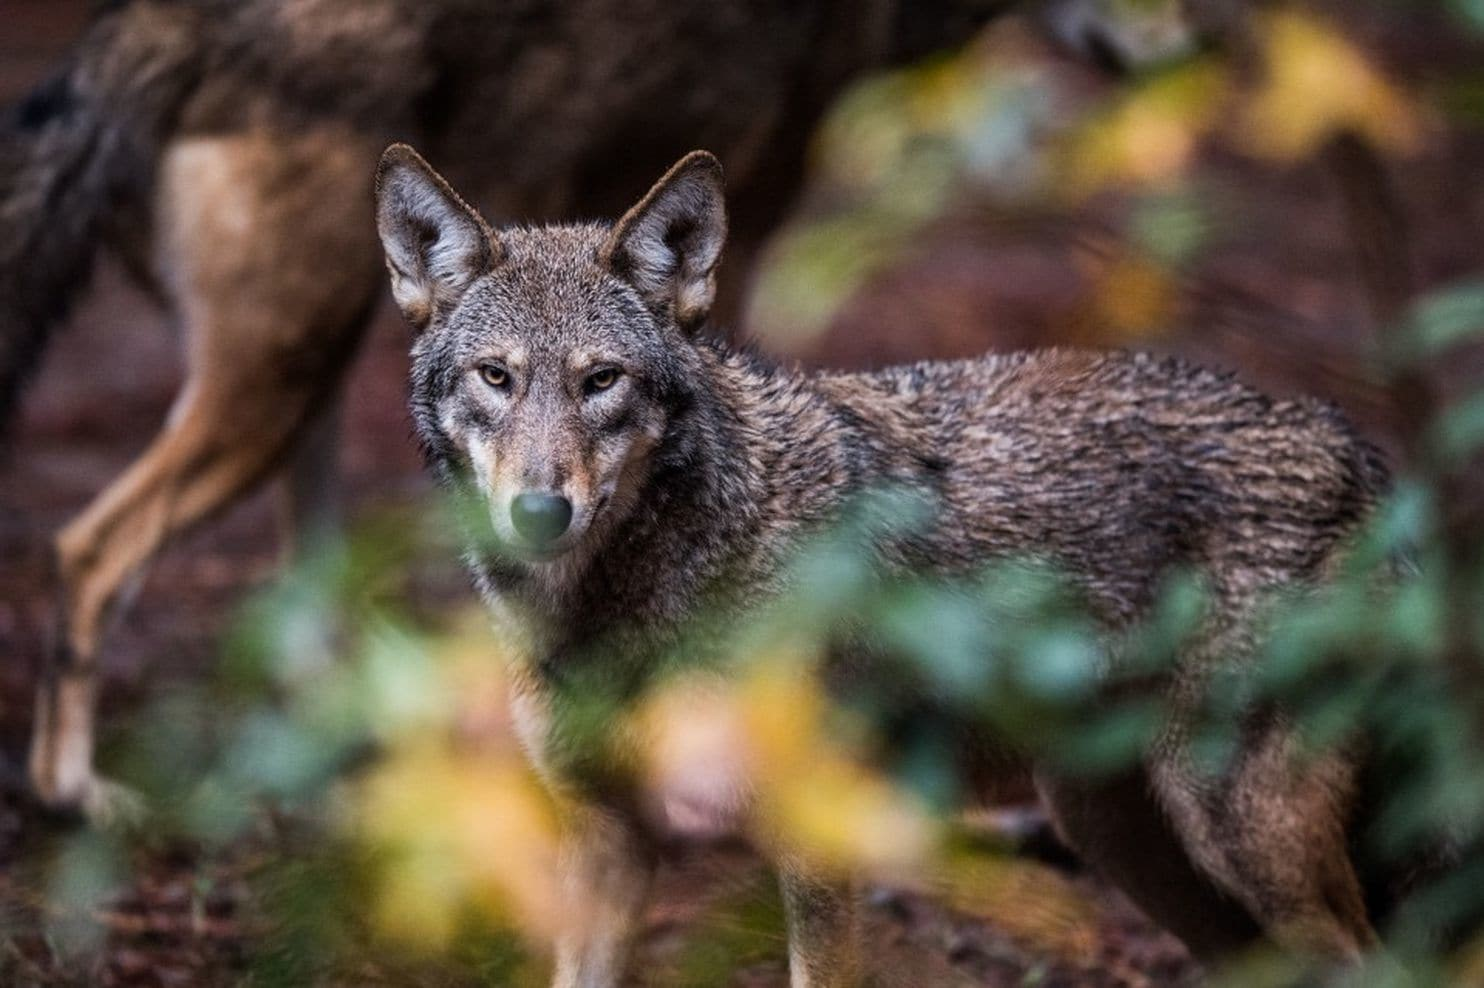 Green and yellow leaves frame a red wolf looks directly at the camera.